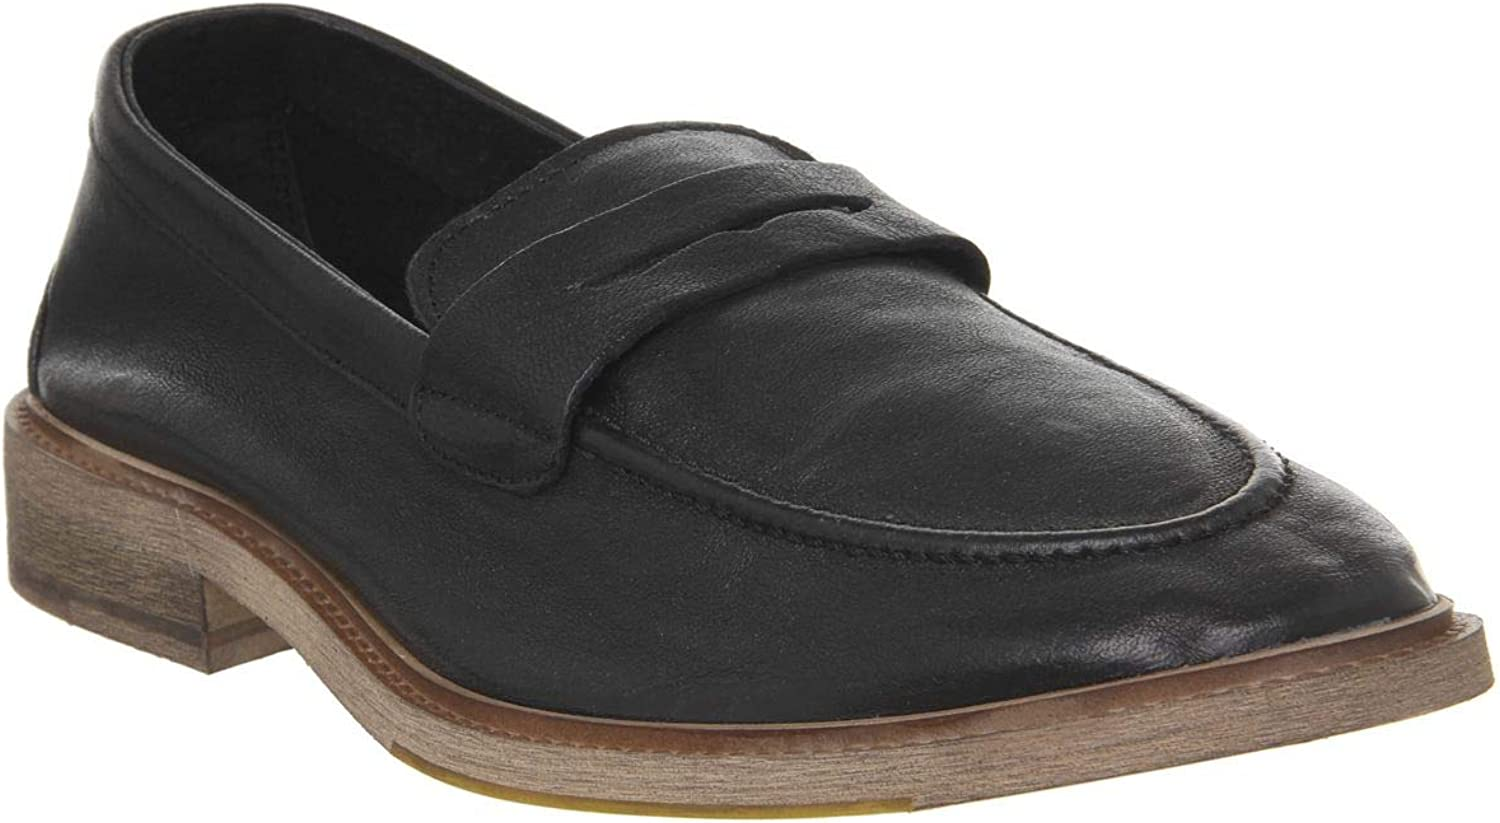 6ffb4b1c092 Ask The Lazy Loafers Penny Missus glkx412453775-New Shoes - www ...